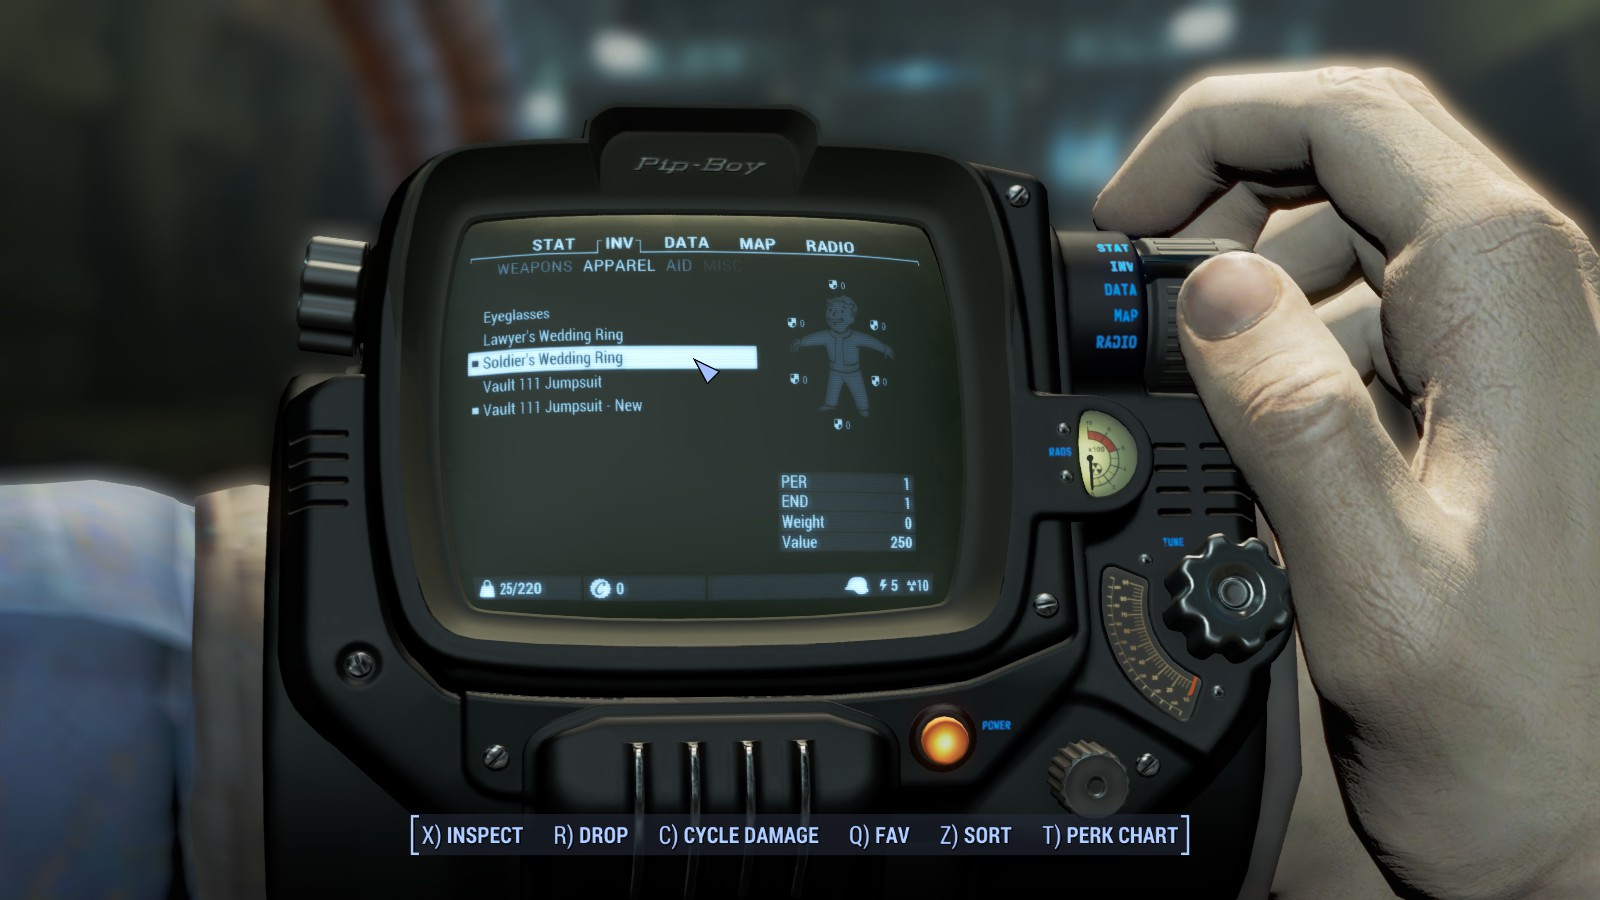 Lovers Rings at Fallout 4 Nexus Mods and community